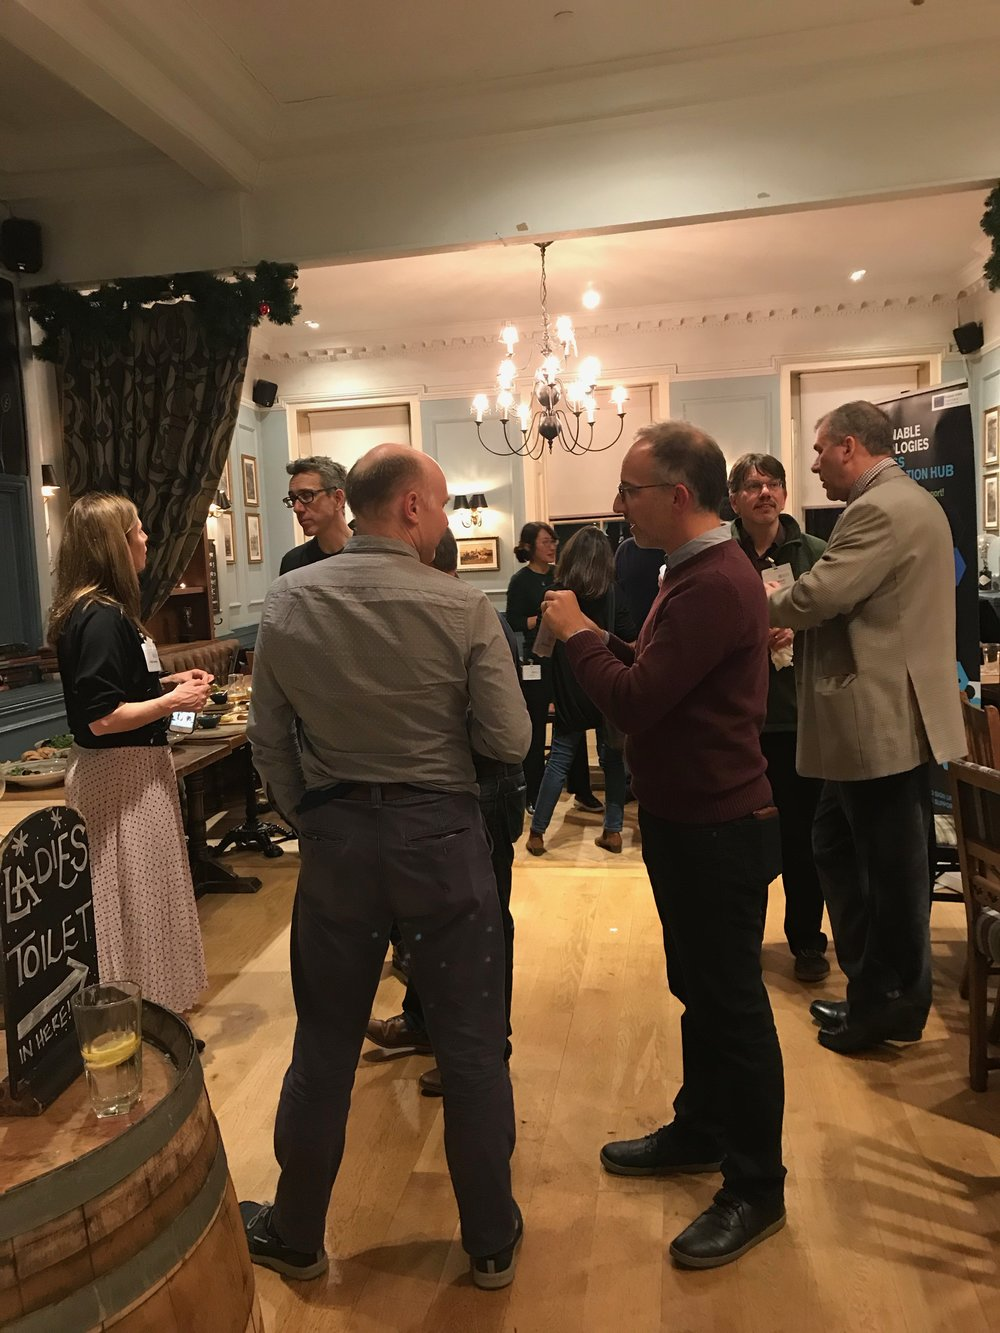 Guest mingle and network at the STBAH event